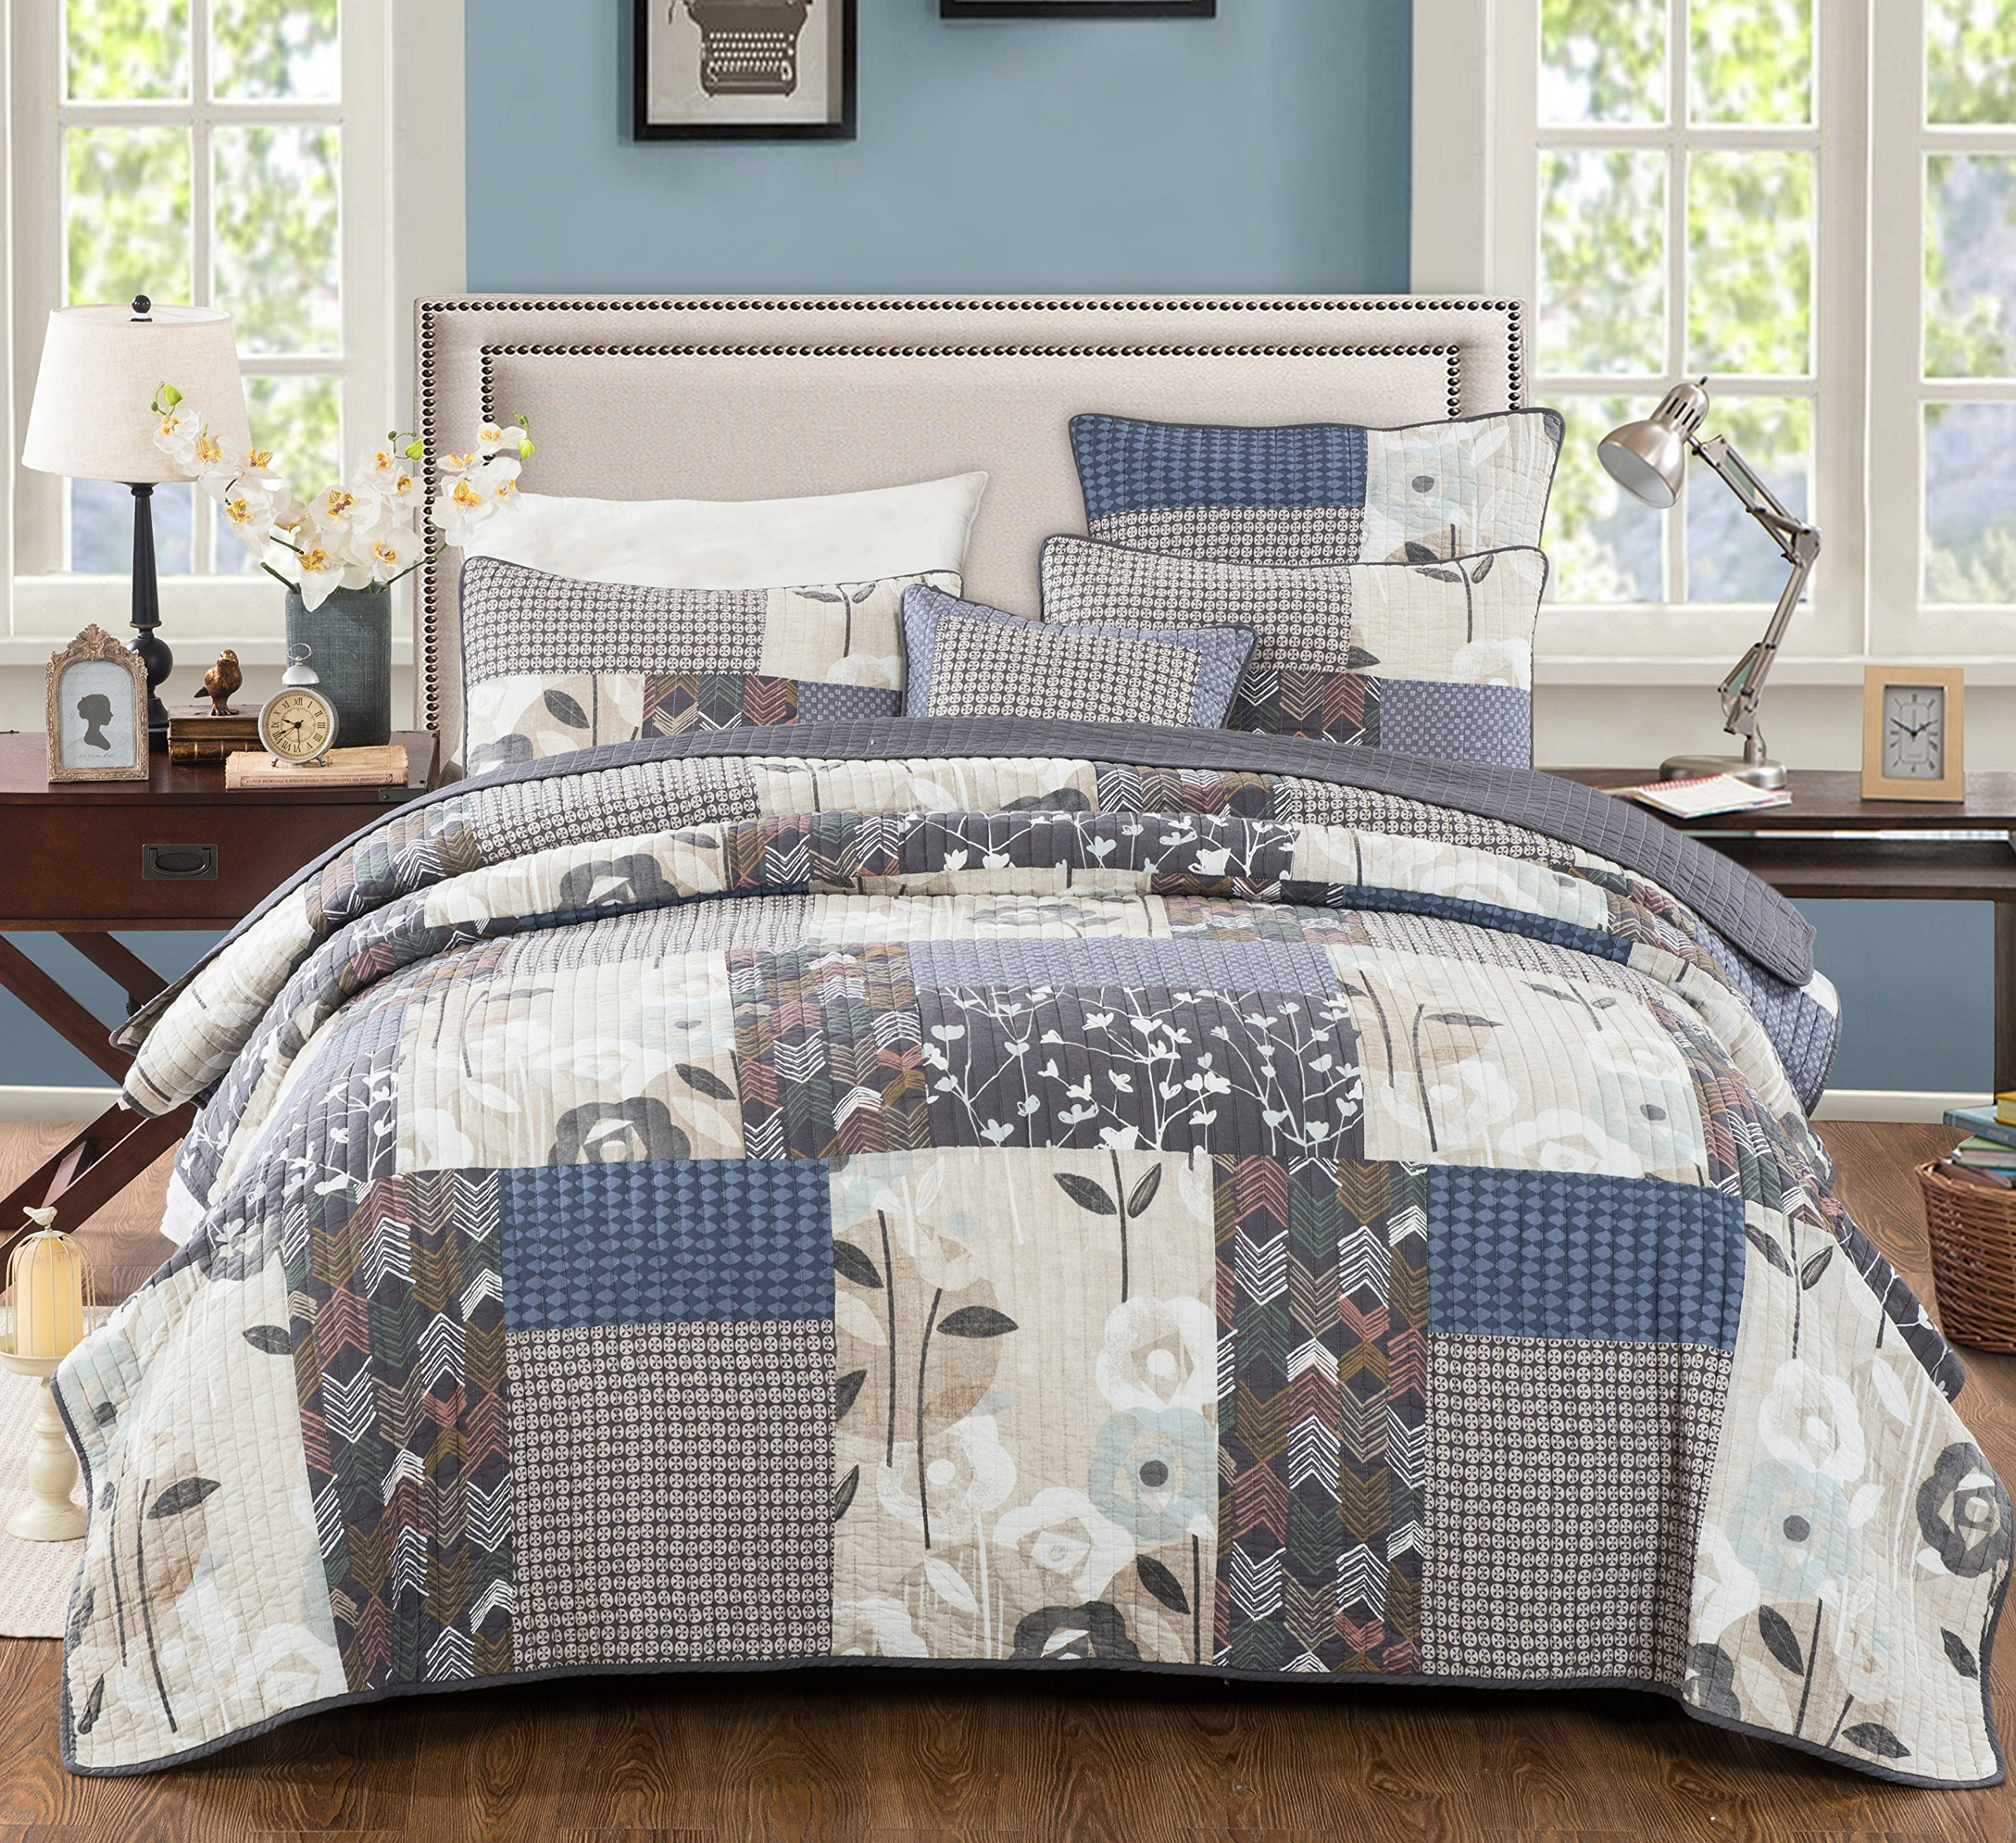 DaDa Bedding Quiet Country Farmhouse Real Patchwork Cotton Quilted Coverlet Bedspread Set - Warm Multi Colorful Dark Navy Blue Grey Floral Print - Queen - 3-Pieces